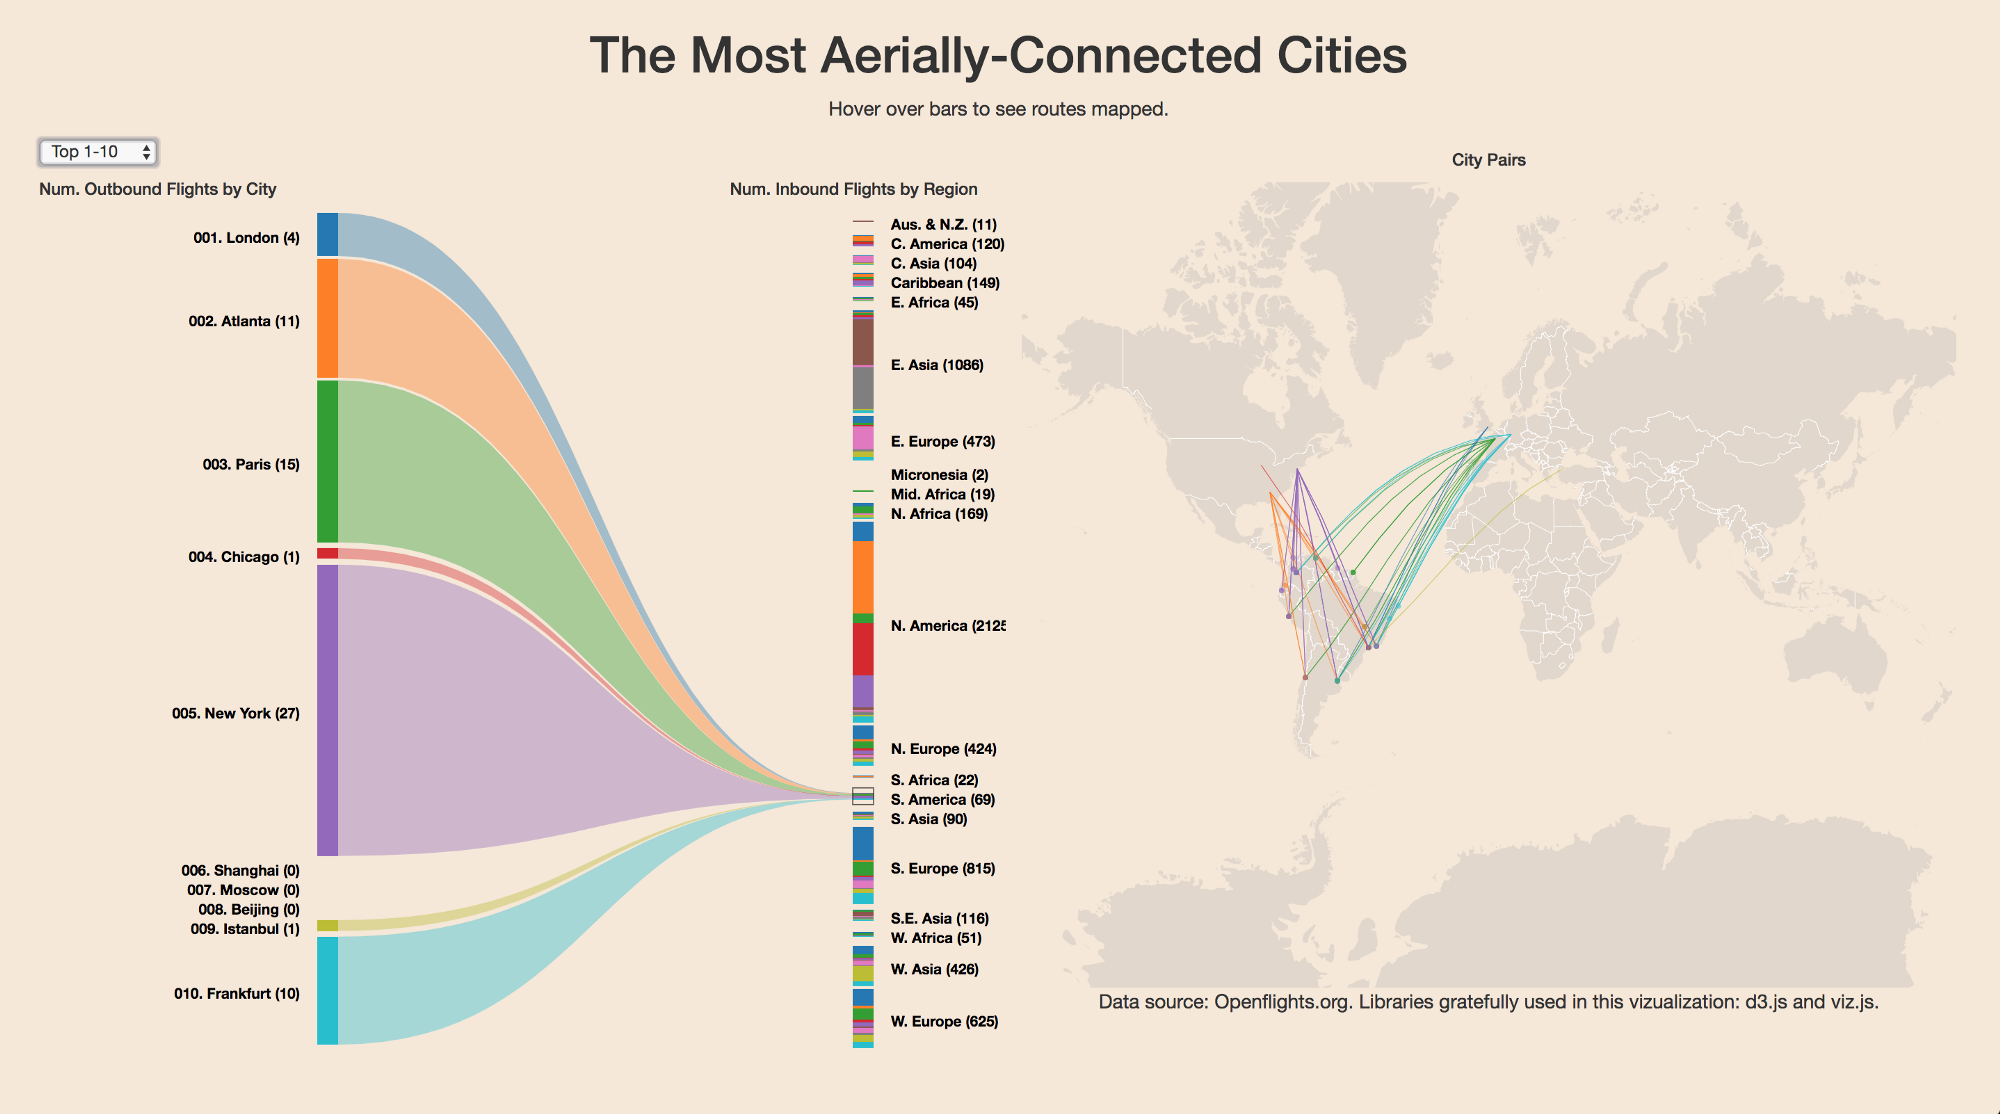 How Powerful/Aerially-Connected is Your City? – Towards Data Science